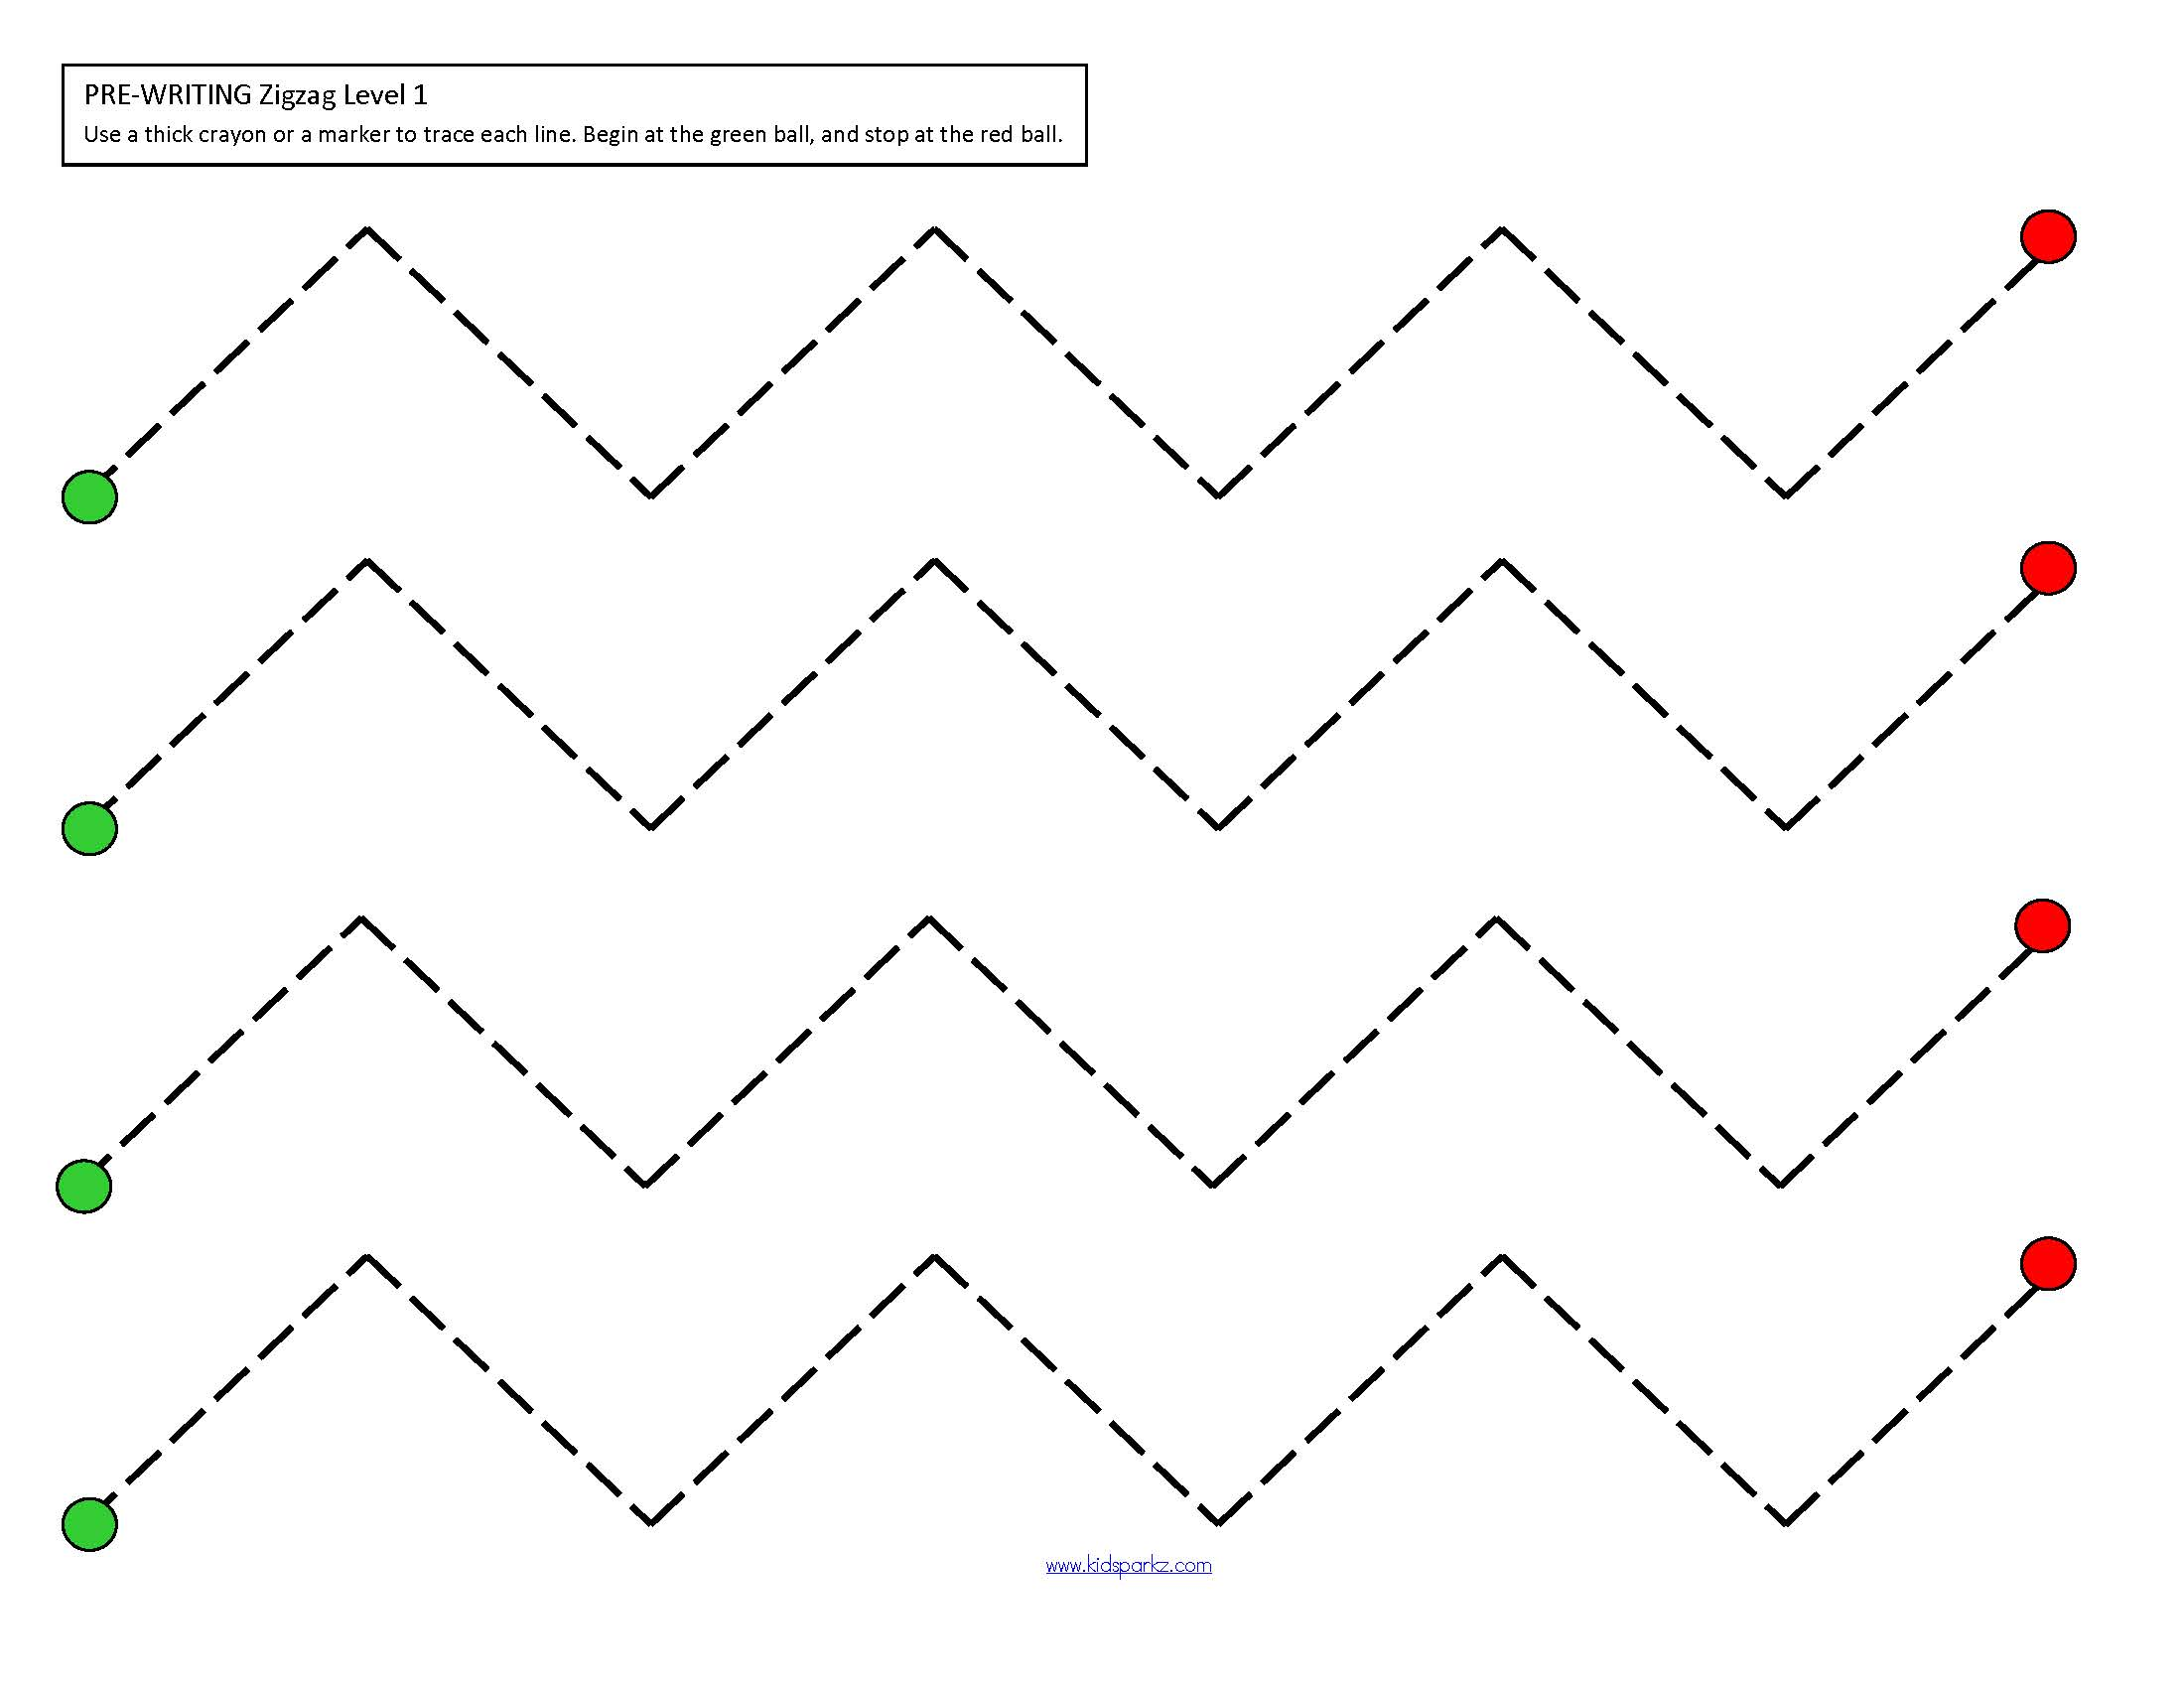 Fine Motor Skills Tracing Pre Writing Practice Packet